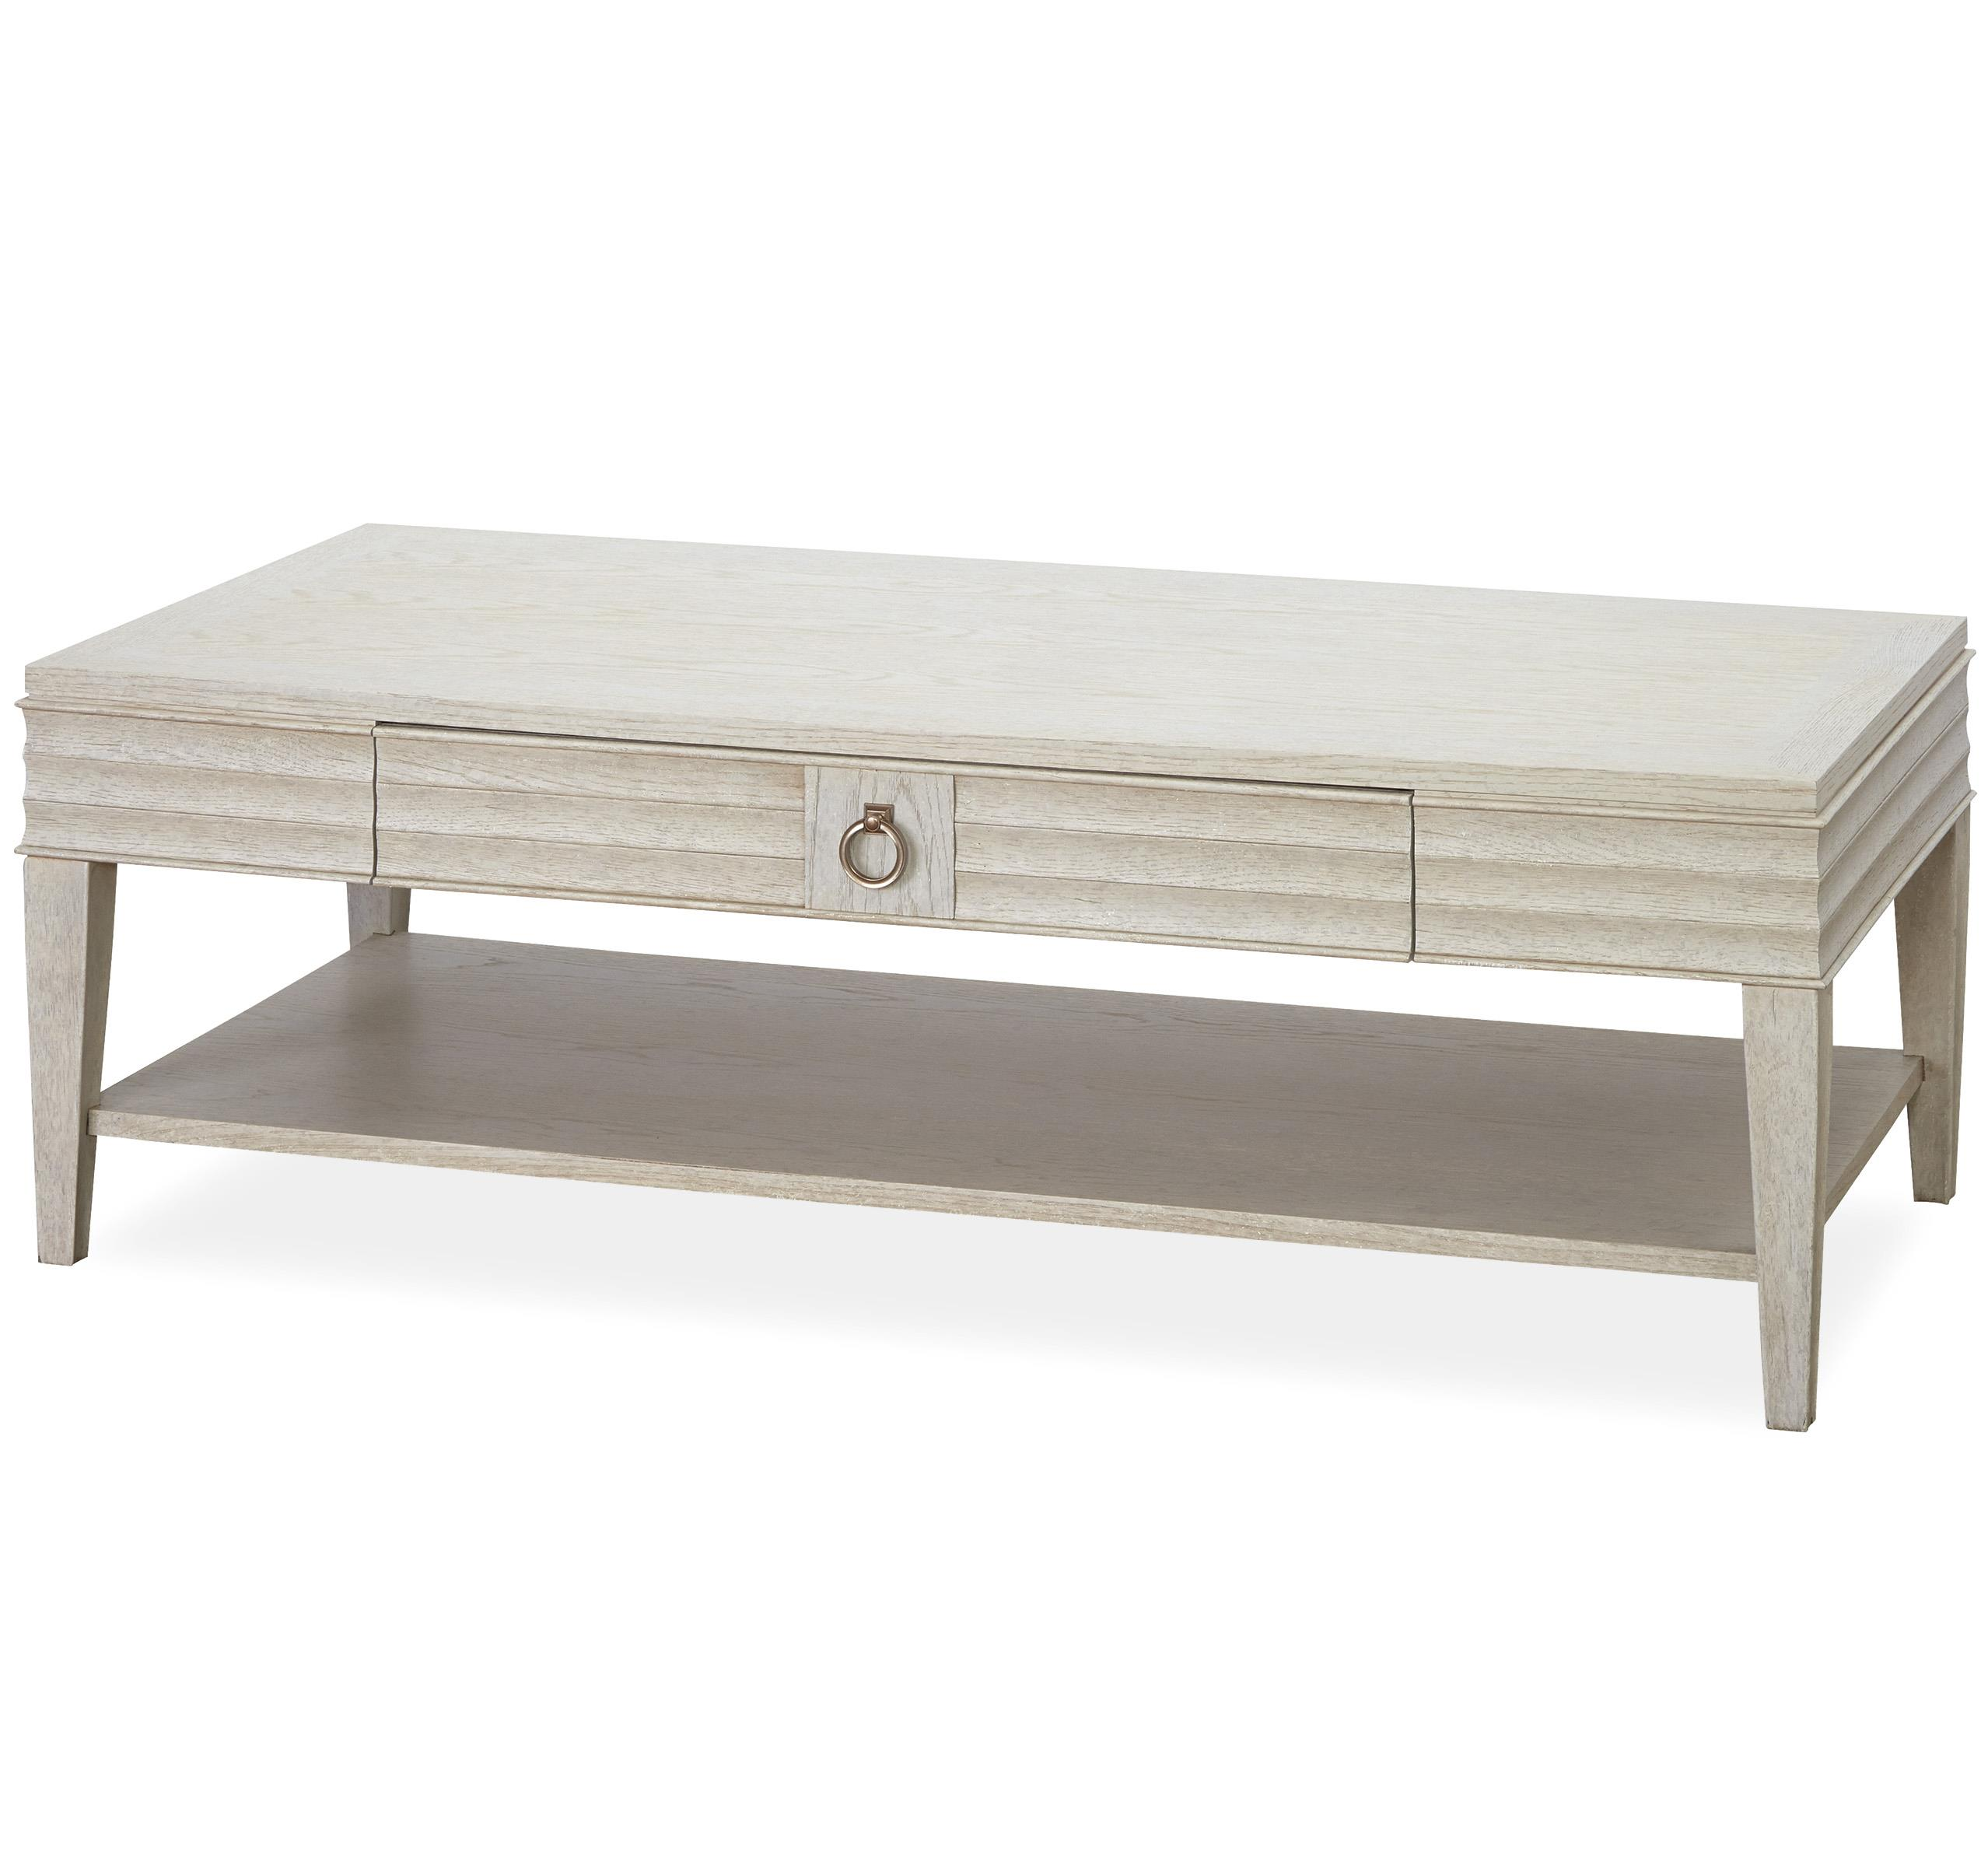 Universal California - Malibu Rectangular Cocktail Table - Item Number: 476801